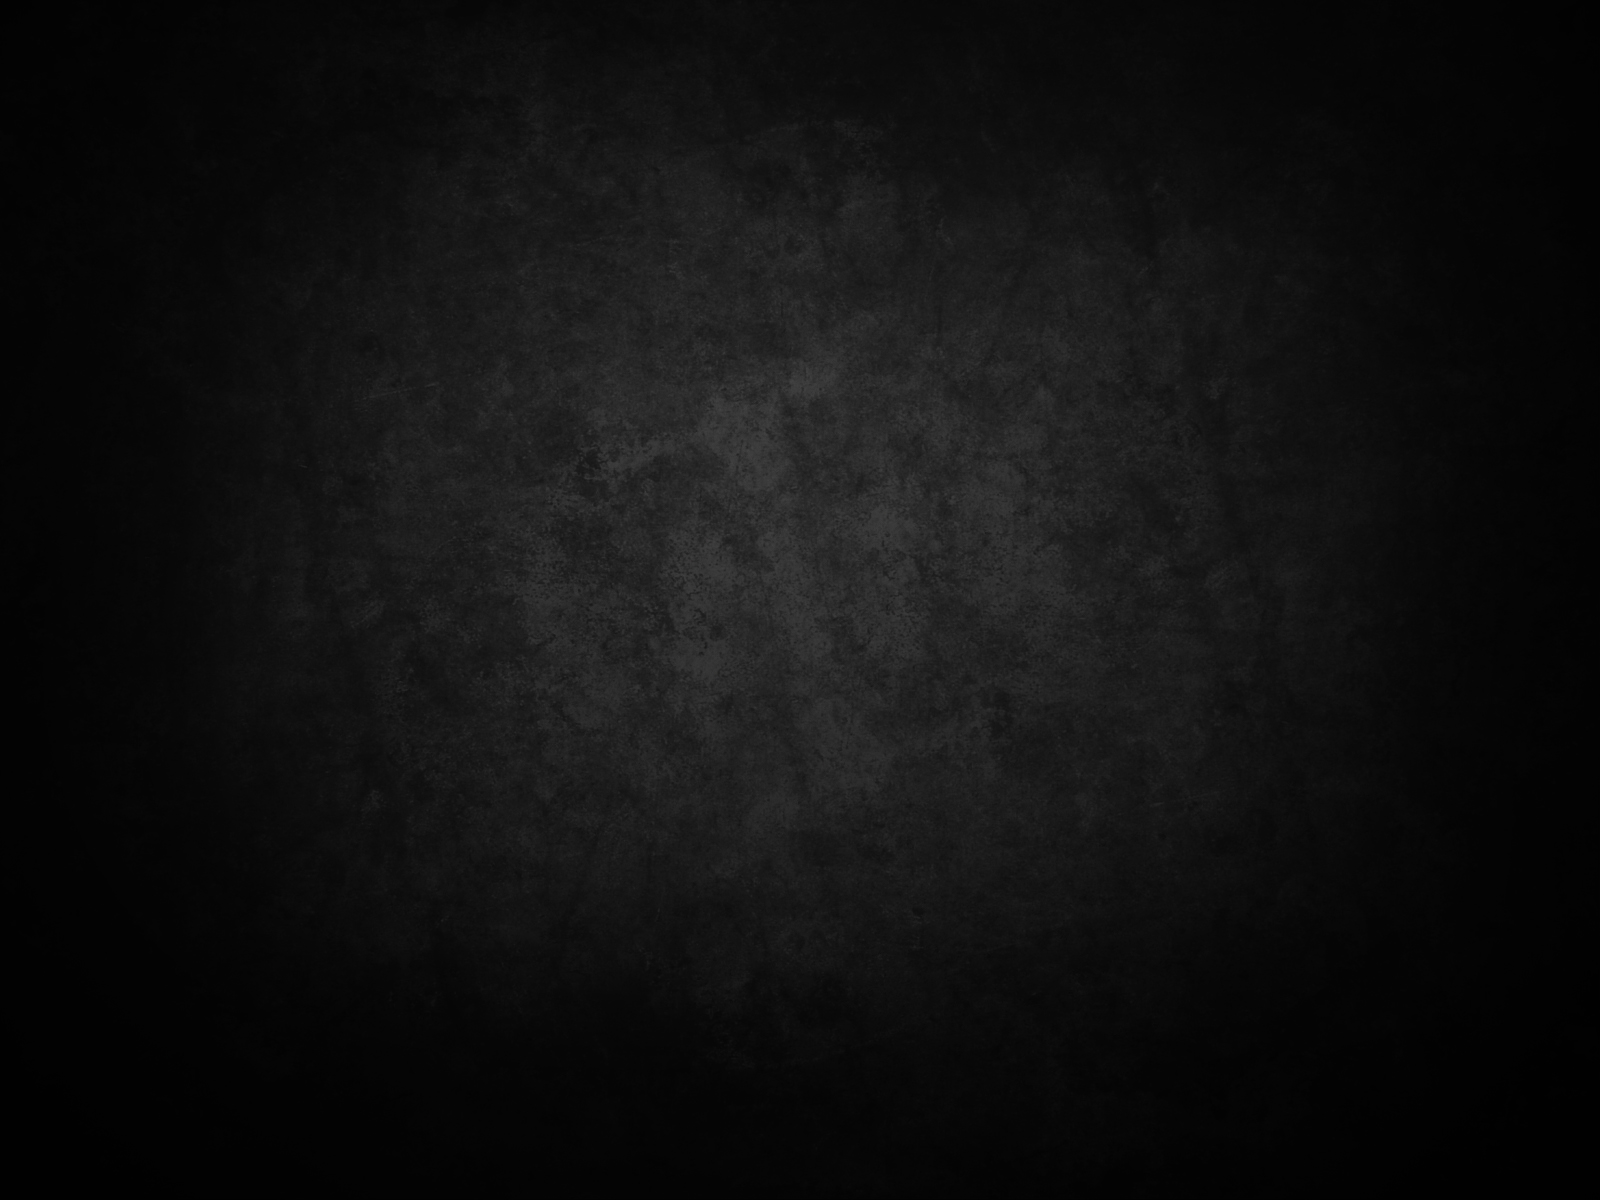 black texture by ethenyl customization wallpaper minimalistic dark 1600x1200